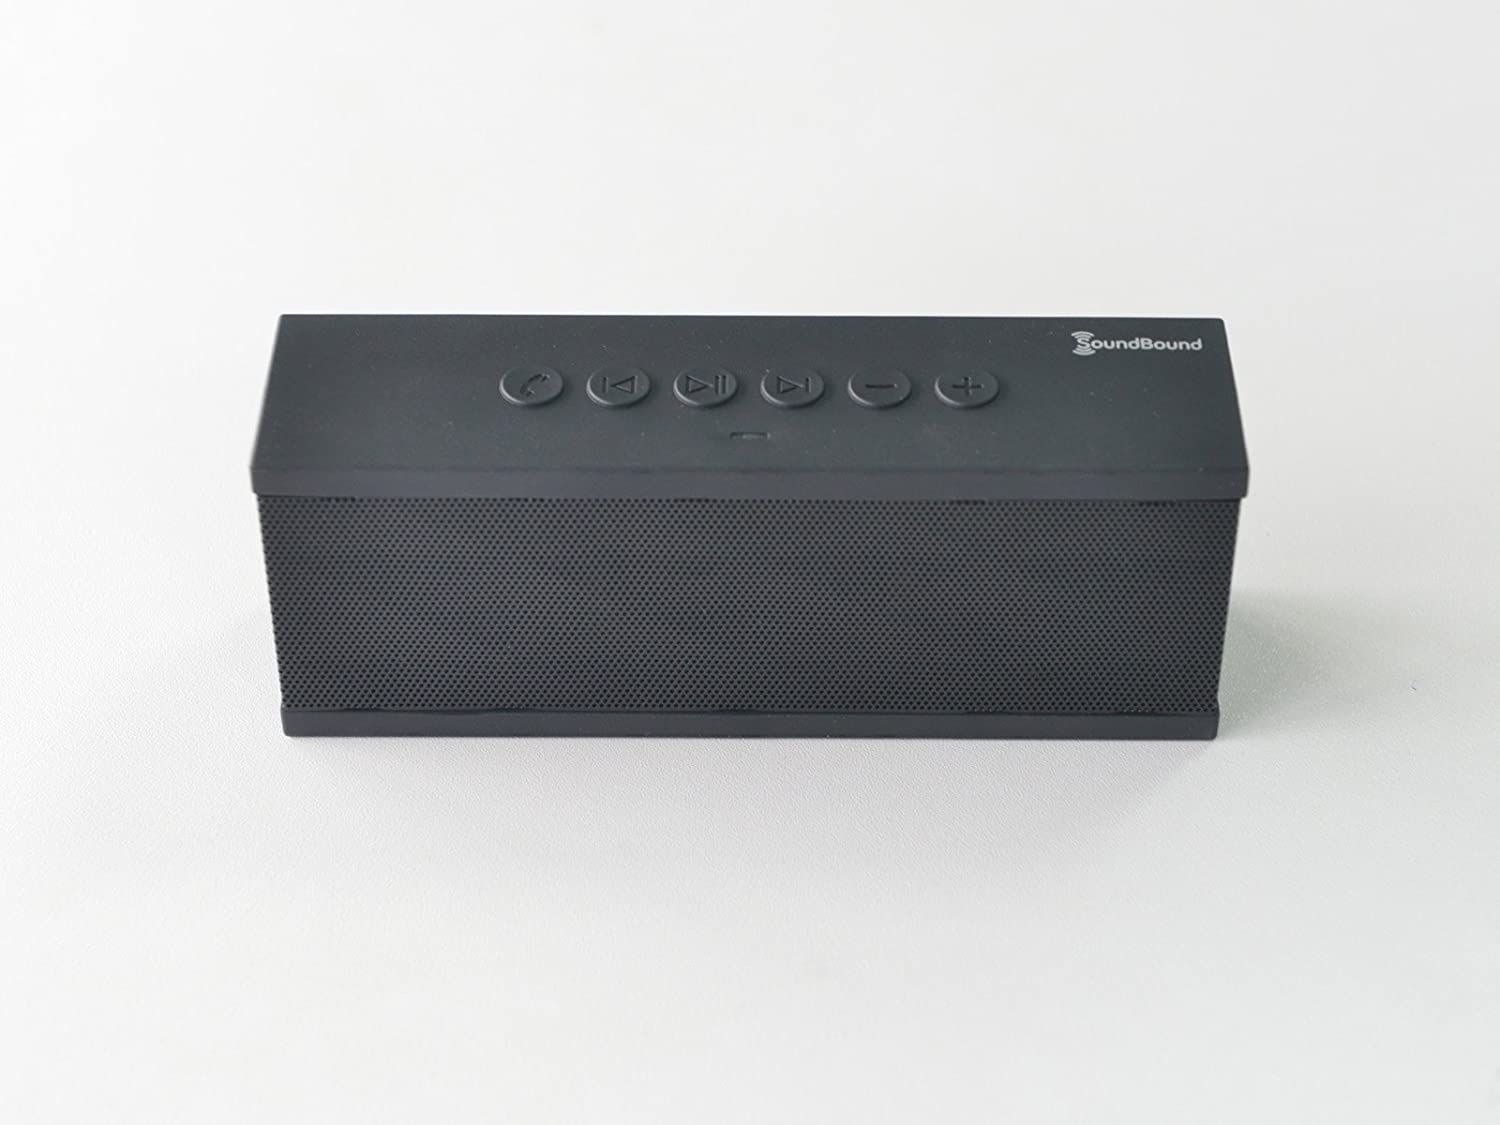 SoundBound Ultra Portable Wireless Bluetooth Speaker with Speakerphone Works with Iphone Mp3 and Smartphones